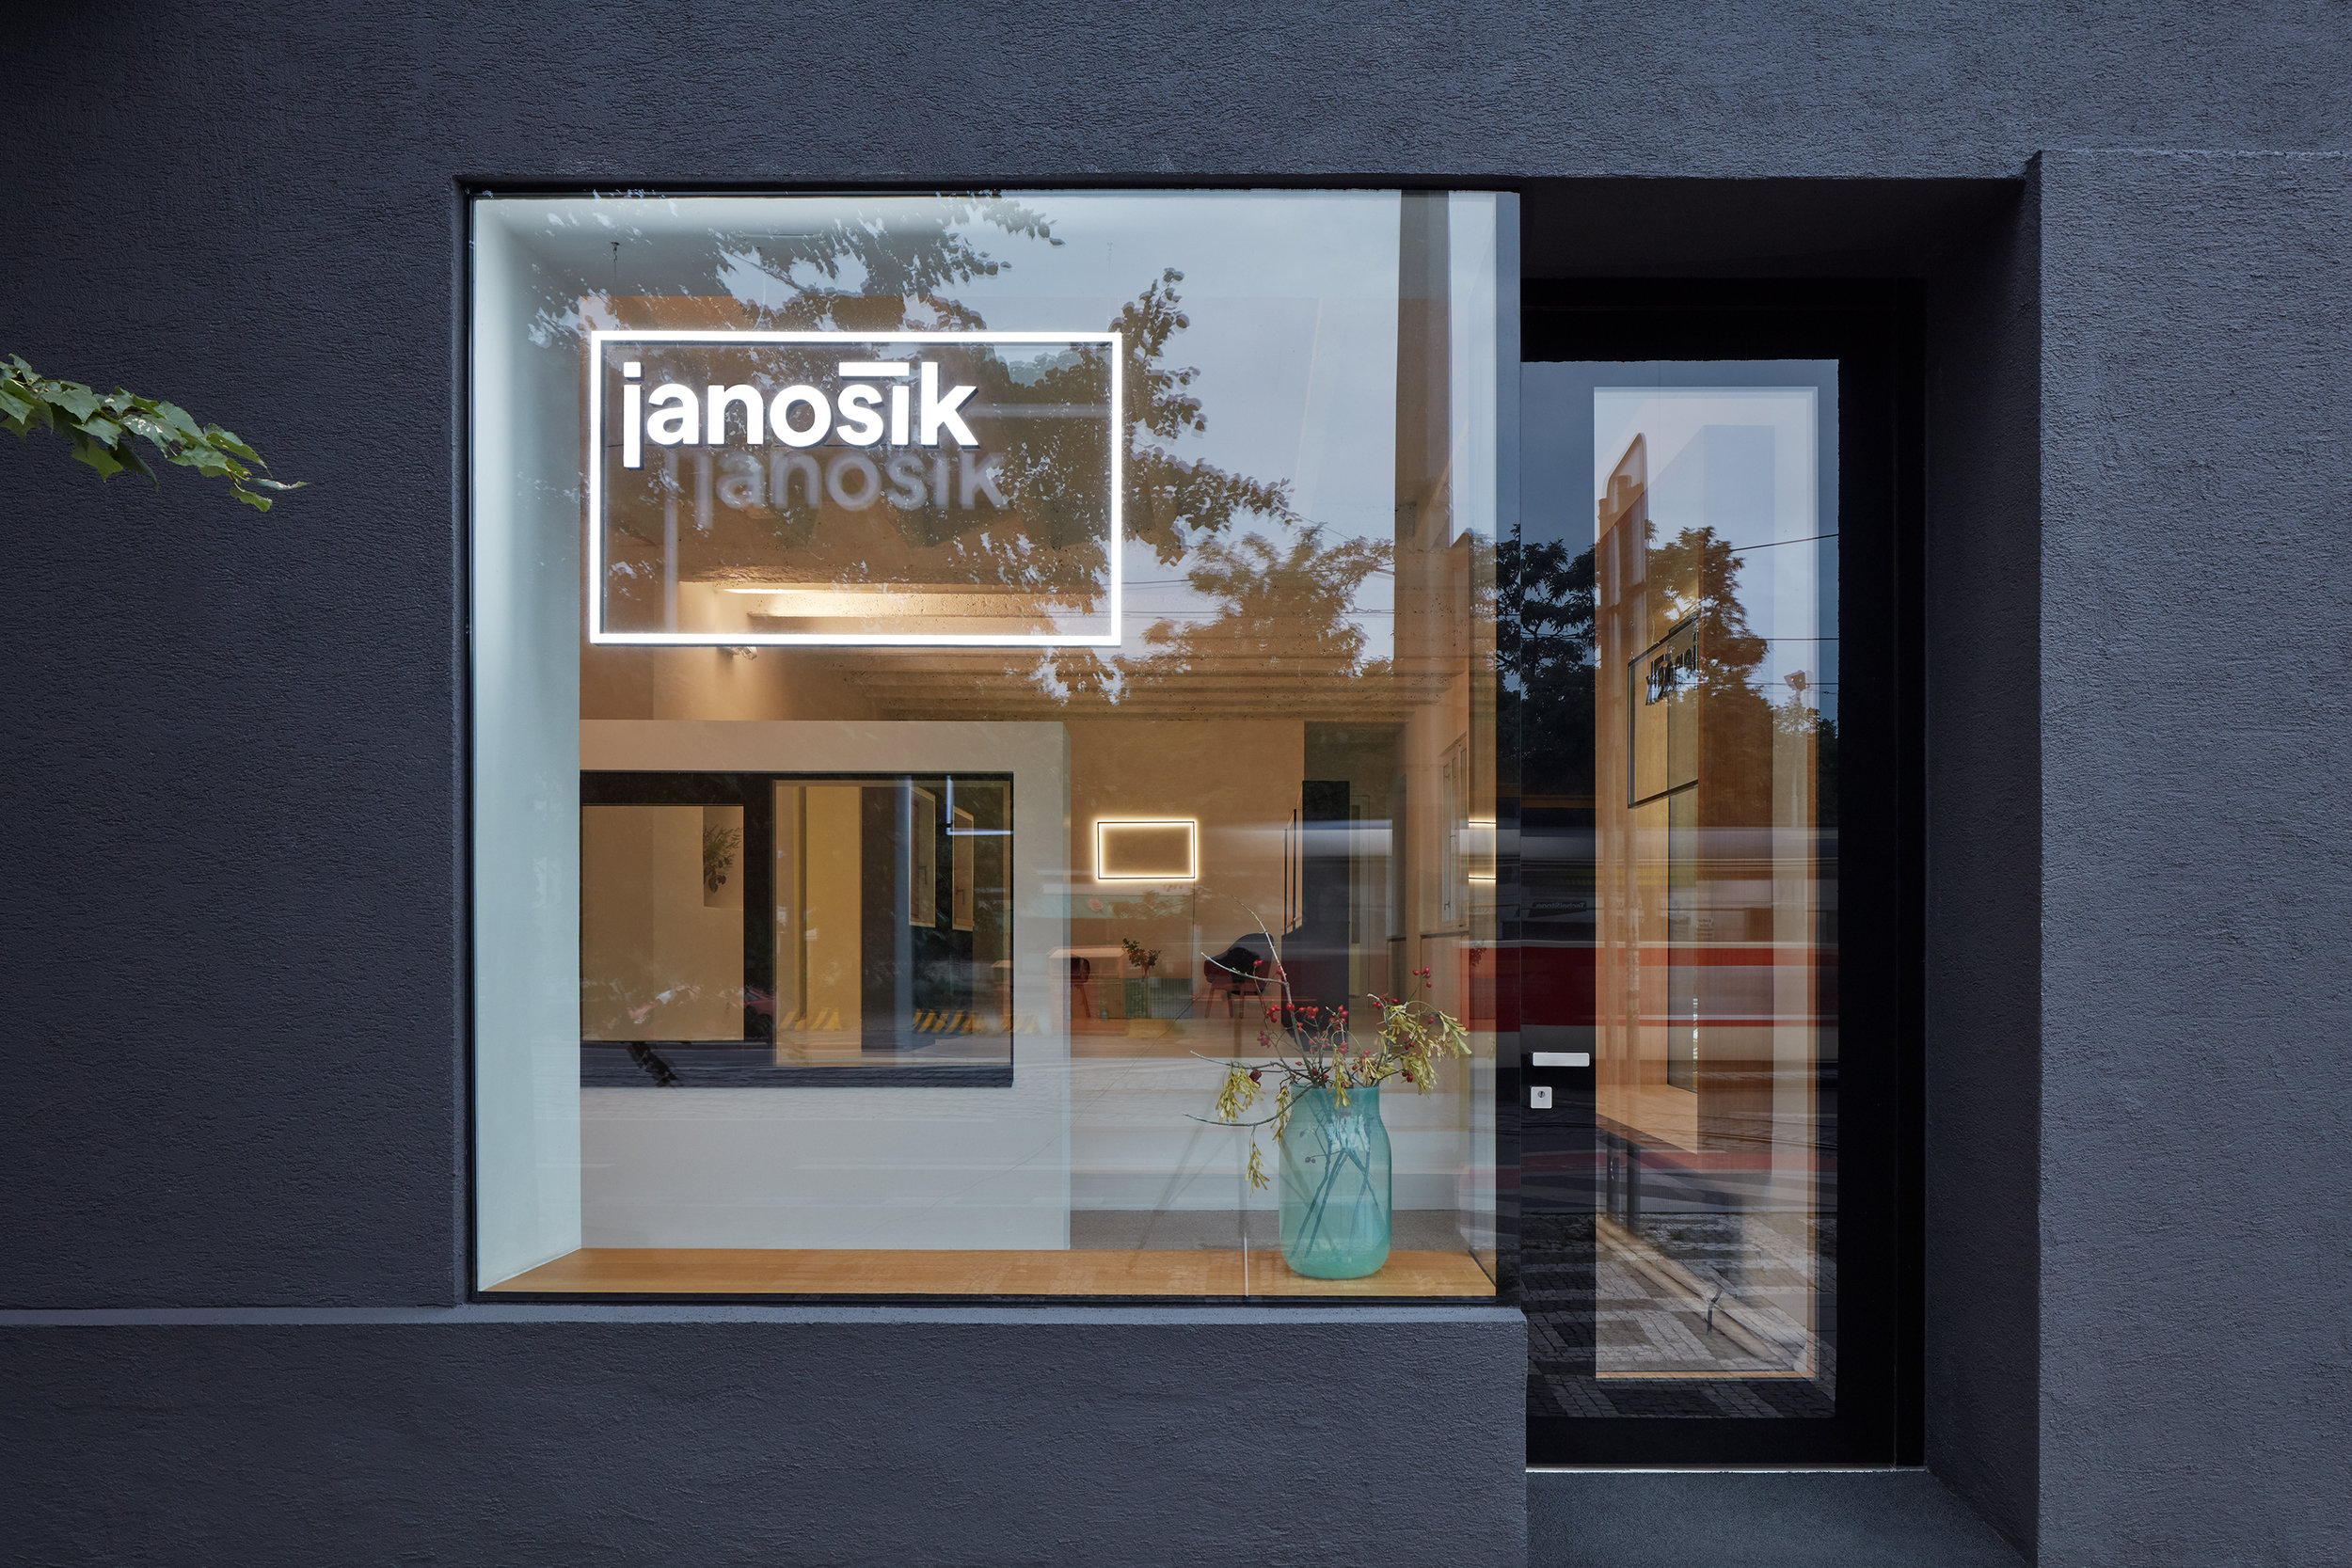 Mjolk_Janosik_Showroom_BoysplayNice_01.jpg